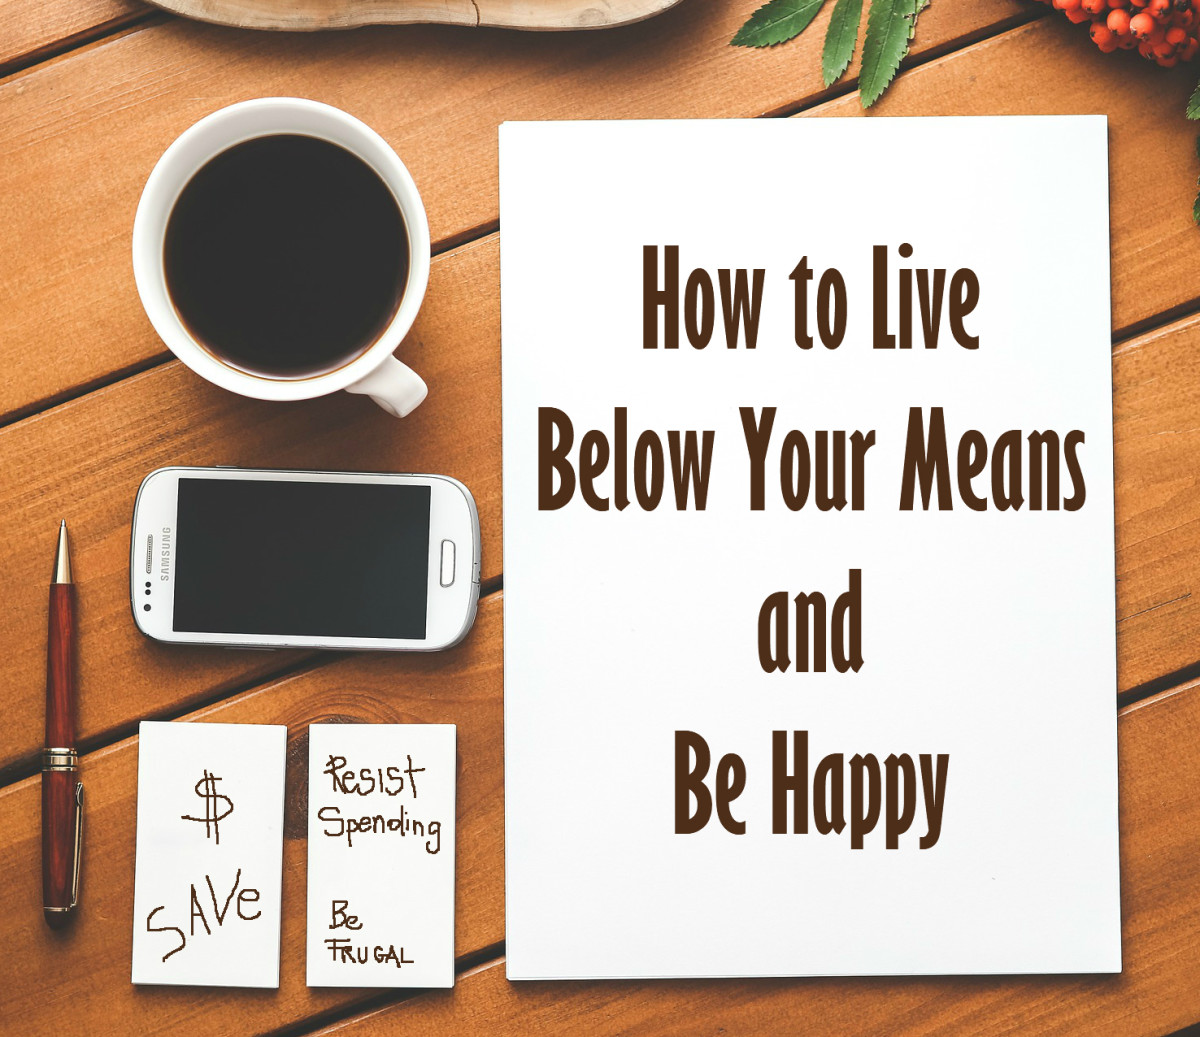 Tips on how to save and live happy on a tight budget - based on my personal experience. Understanding needs vs. wants.